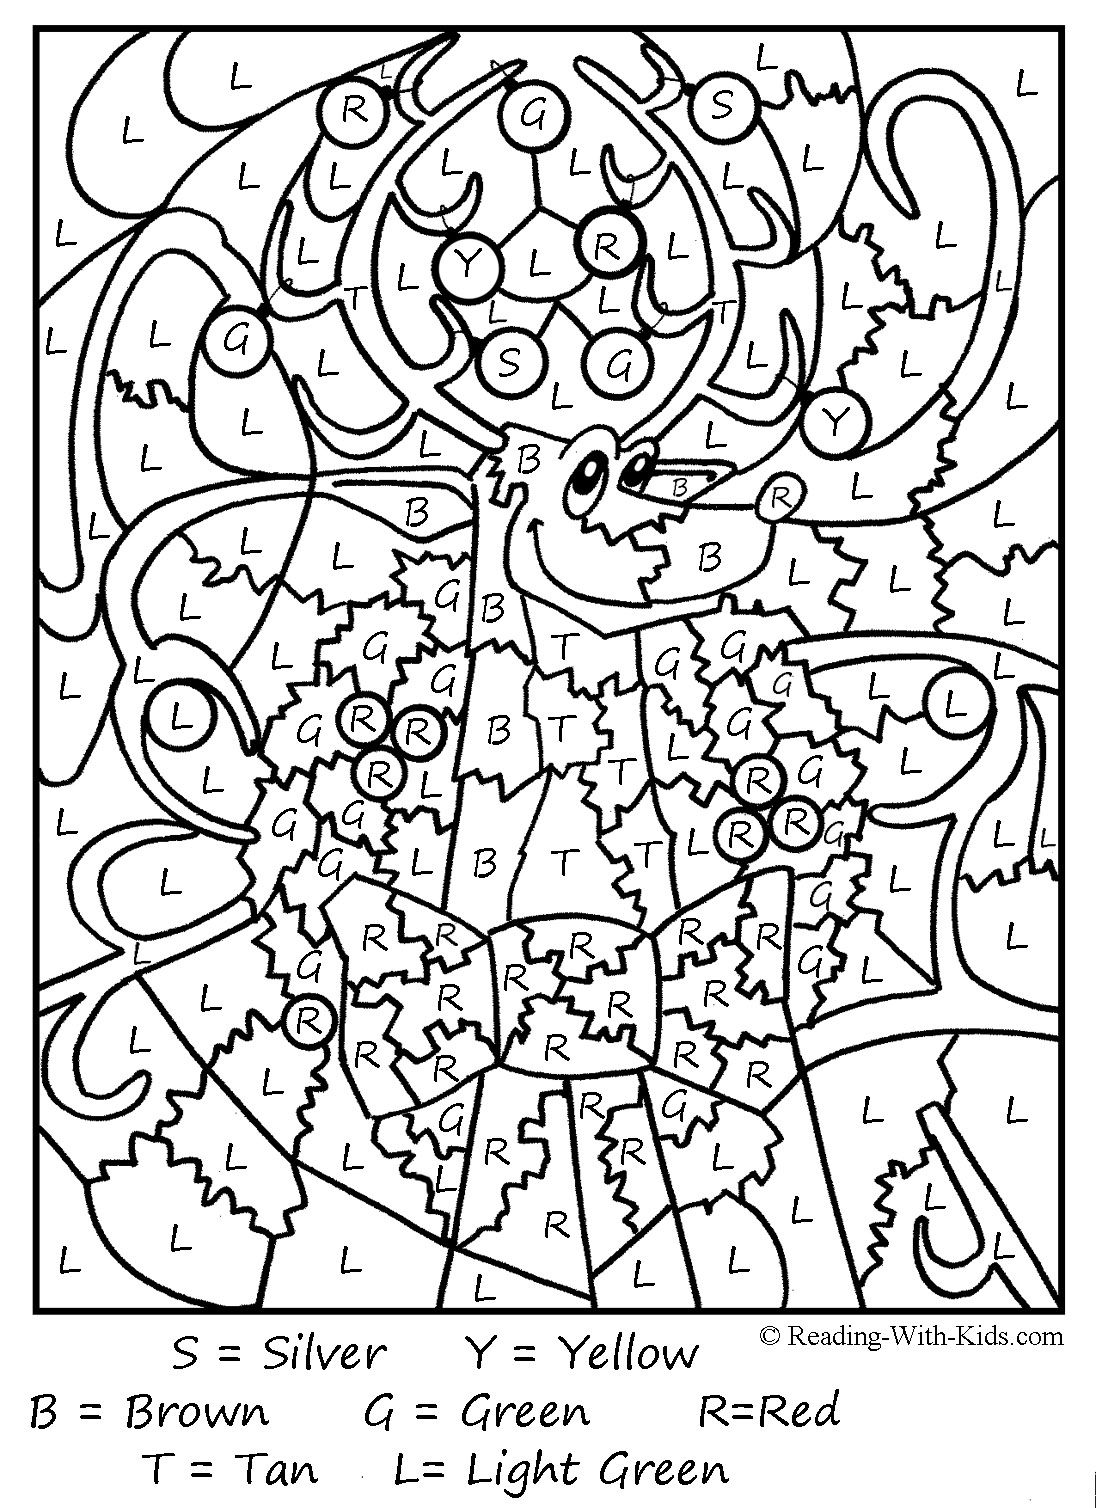 Christmas Coloring Pages For Adults To Print With Color By Number Printable